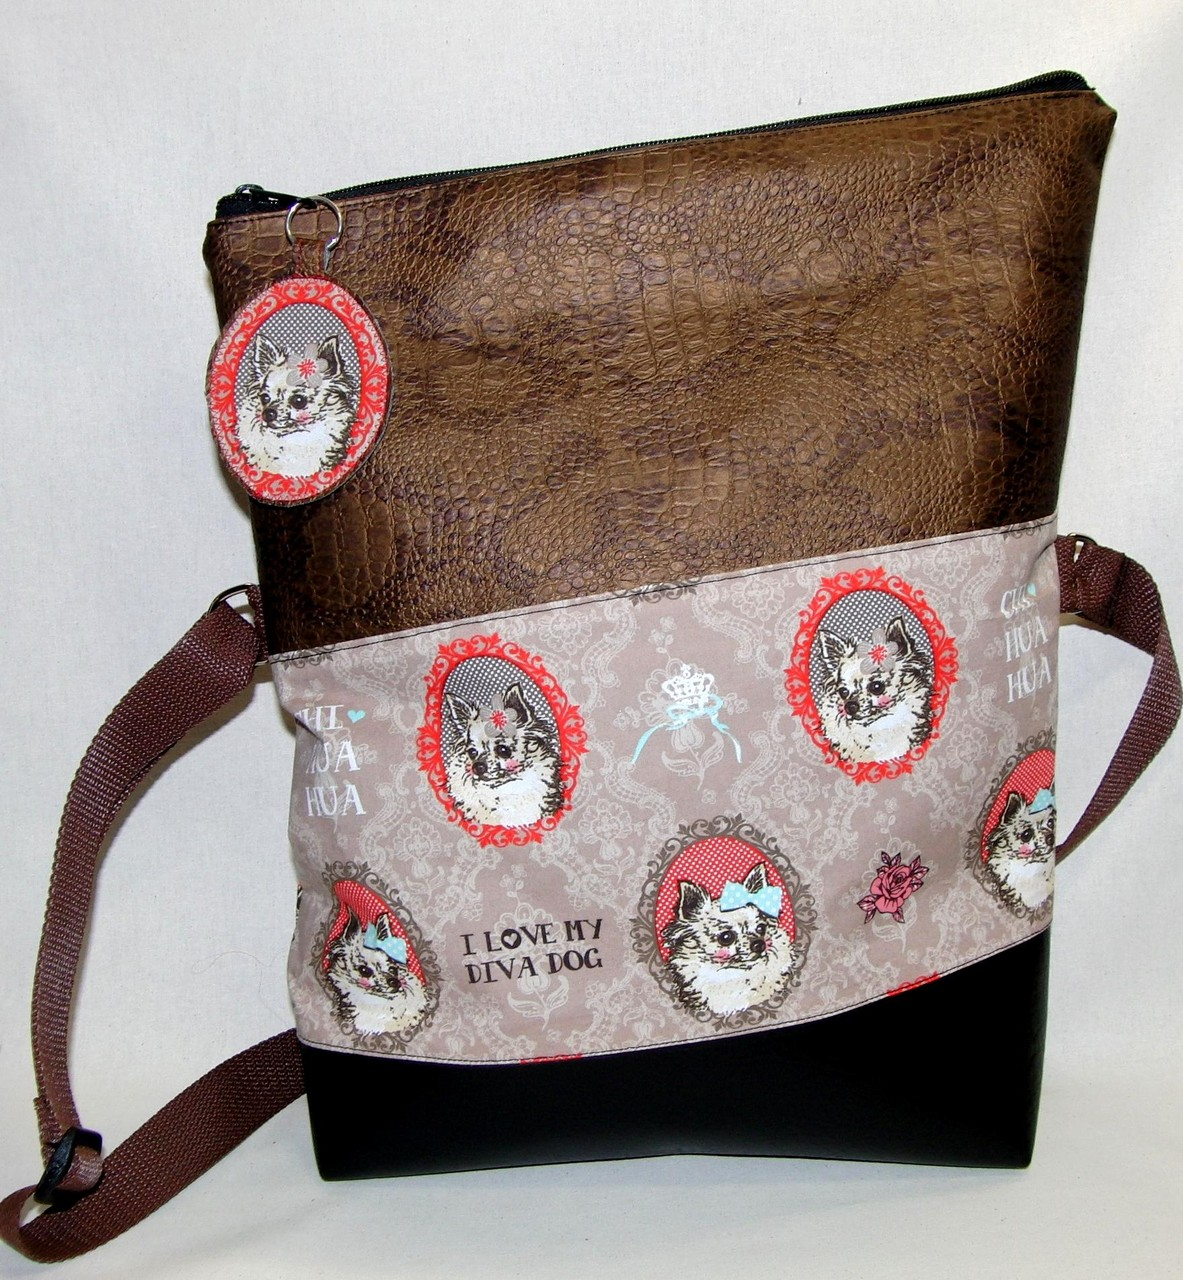 5 Tasche Chi browni 49,90 €